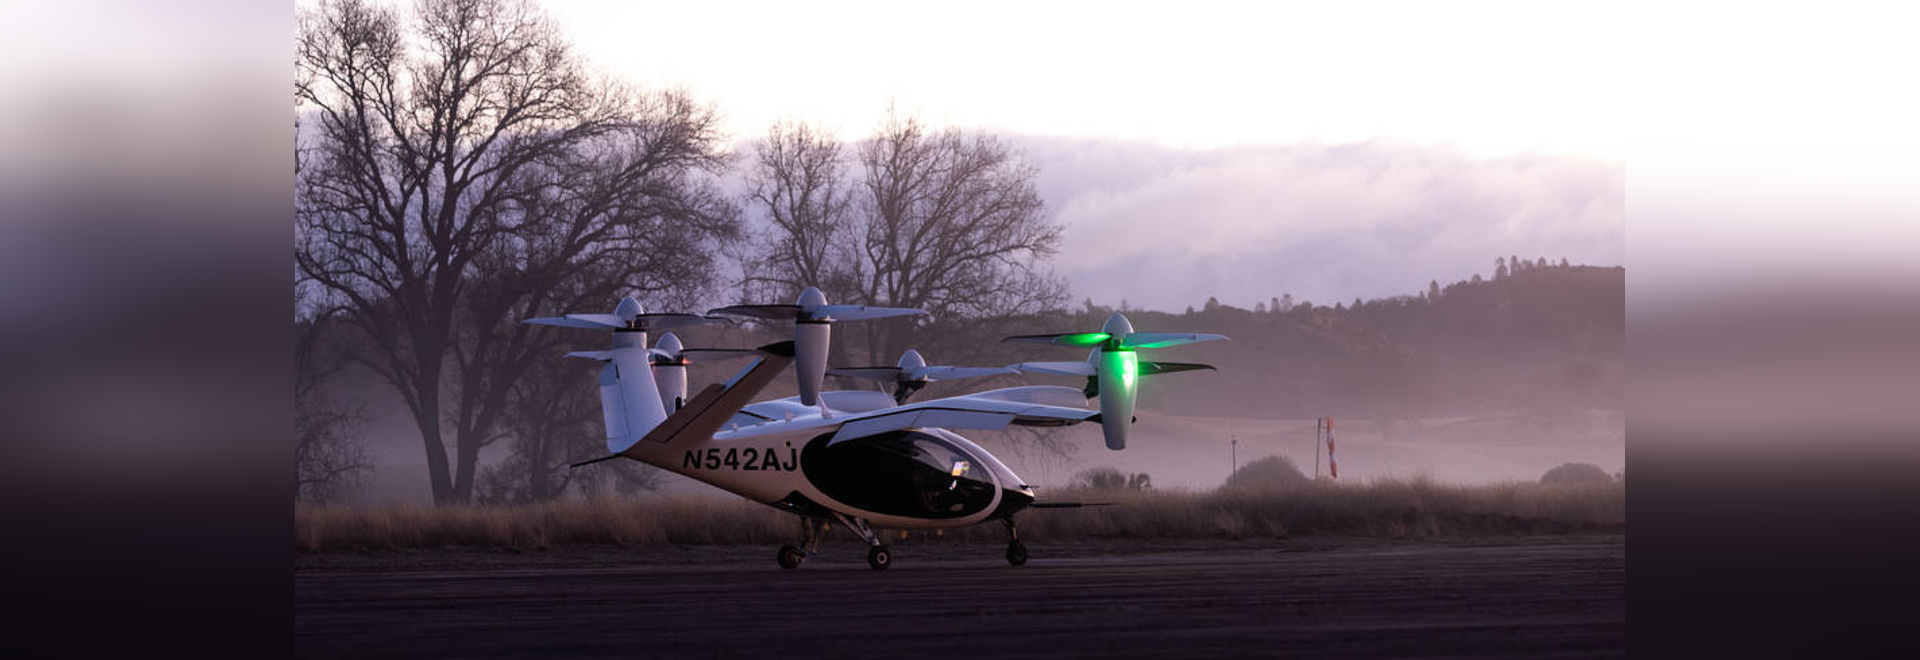 Joby's all-electric vertical takeoff and landing (eVTOL) aircraft is pictured at the company's Electric Flight Base, located near Big Sur, California. NASA began flight testing with the aircraft as...